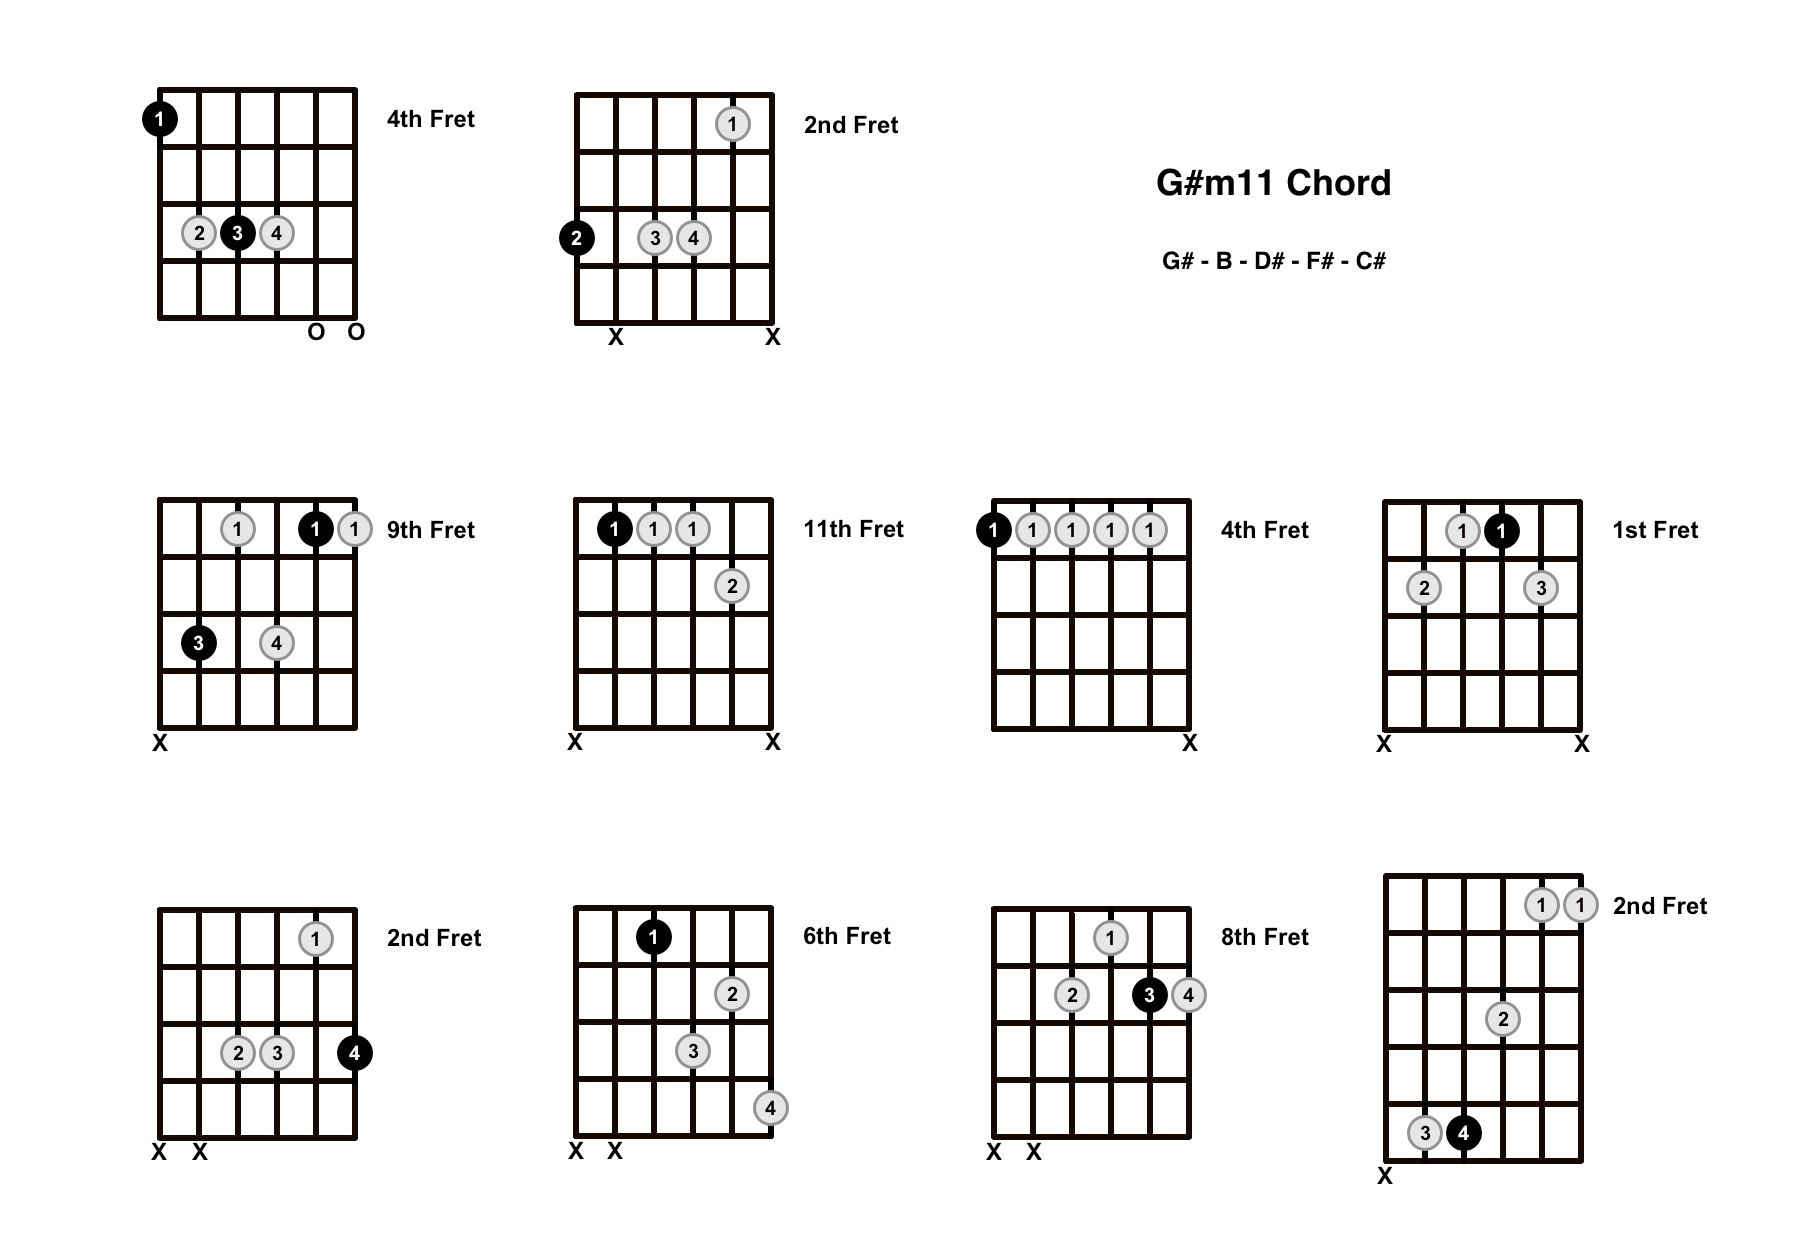 G#m11 Chord On The Guitar (G Sharp minor 11) – Diagrams, Finger Positions and Theory